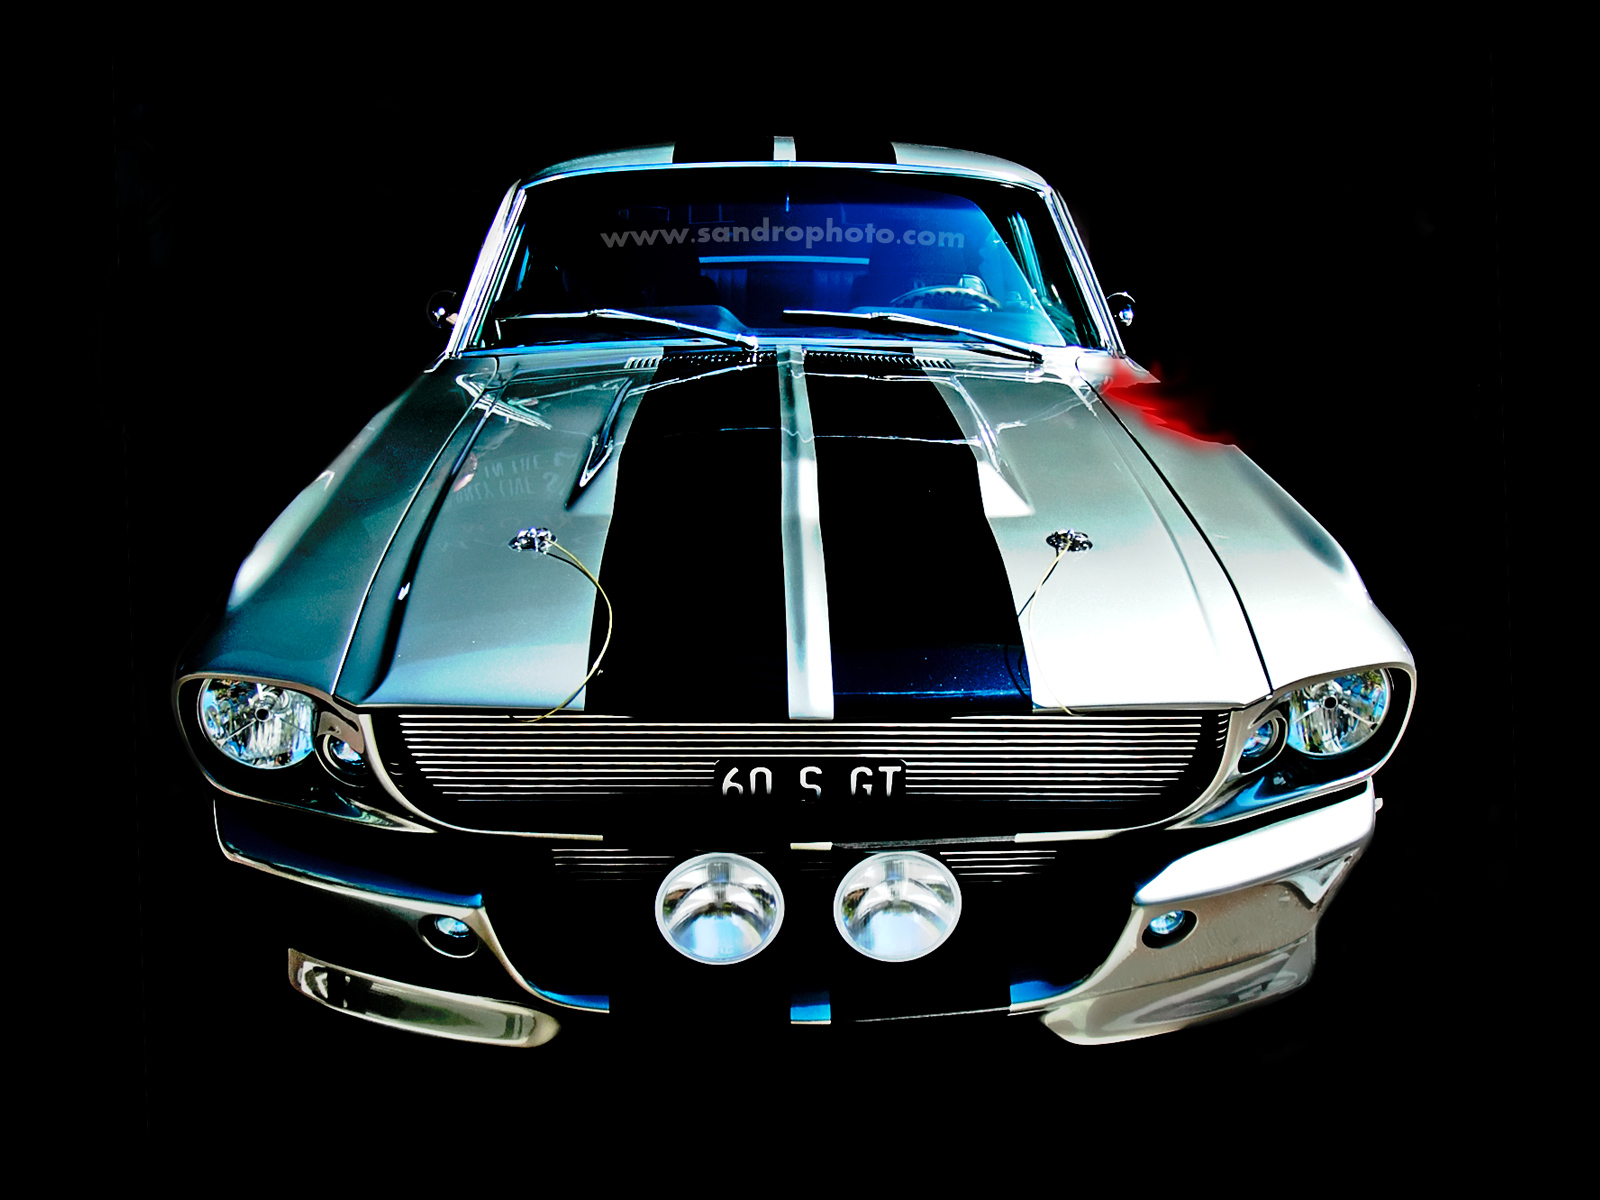 Muscle Car Wallpapers For DesktopCar Wallpaperscar Hdcar Windows 7